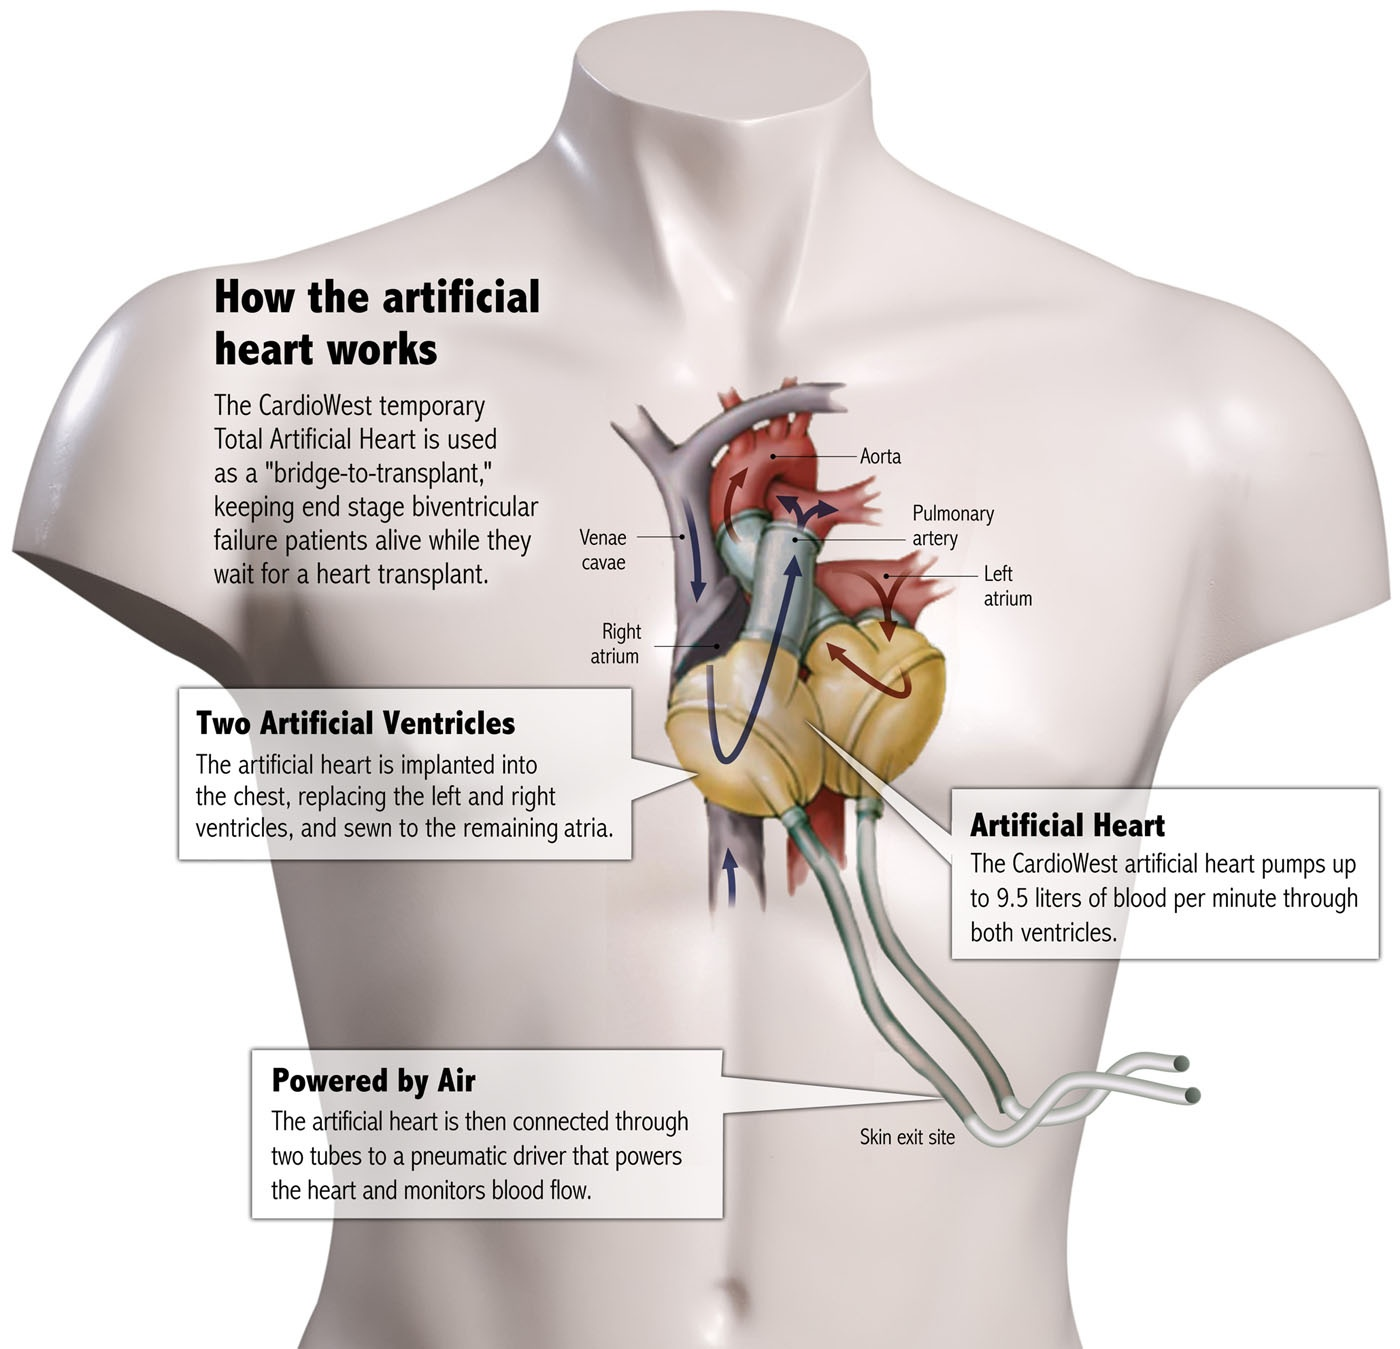 How the Artificial Heart Works